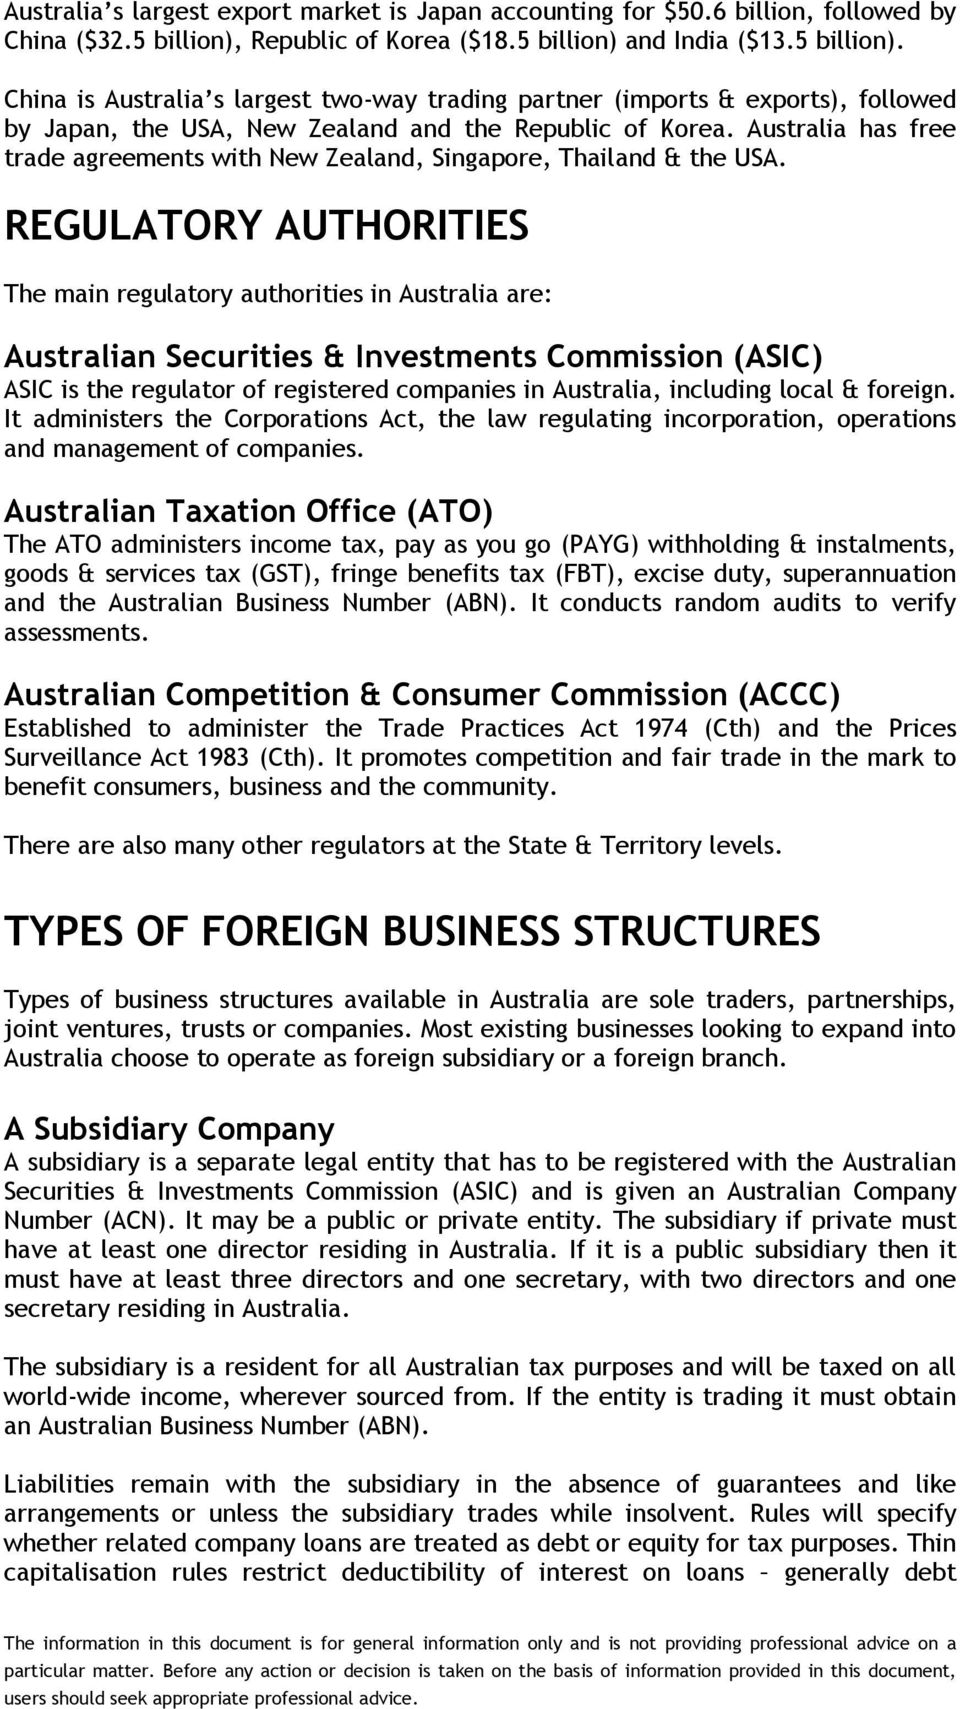 Australia has free trade agreements with New Zealand, Singapore, Thailand & the USA.